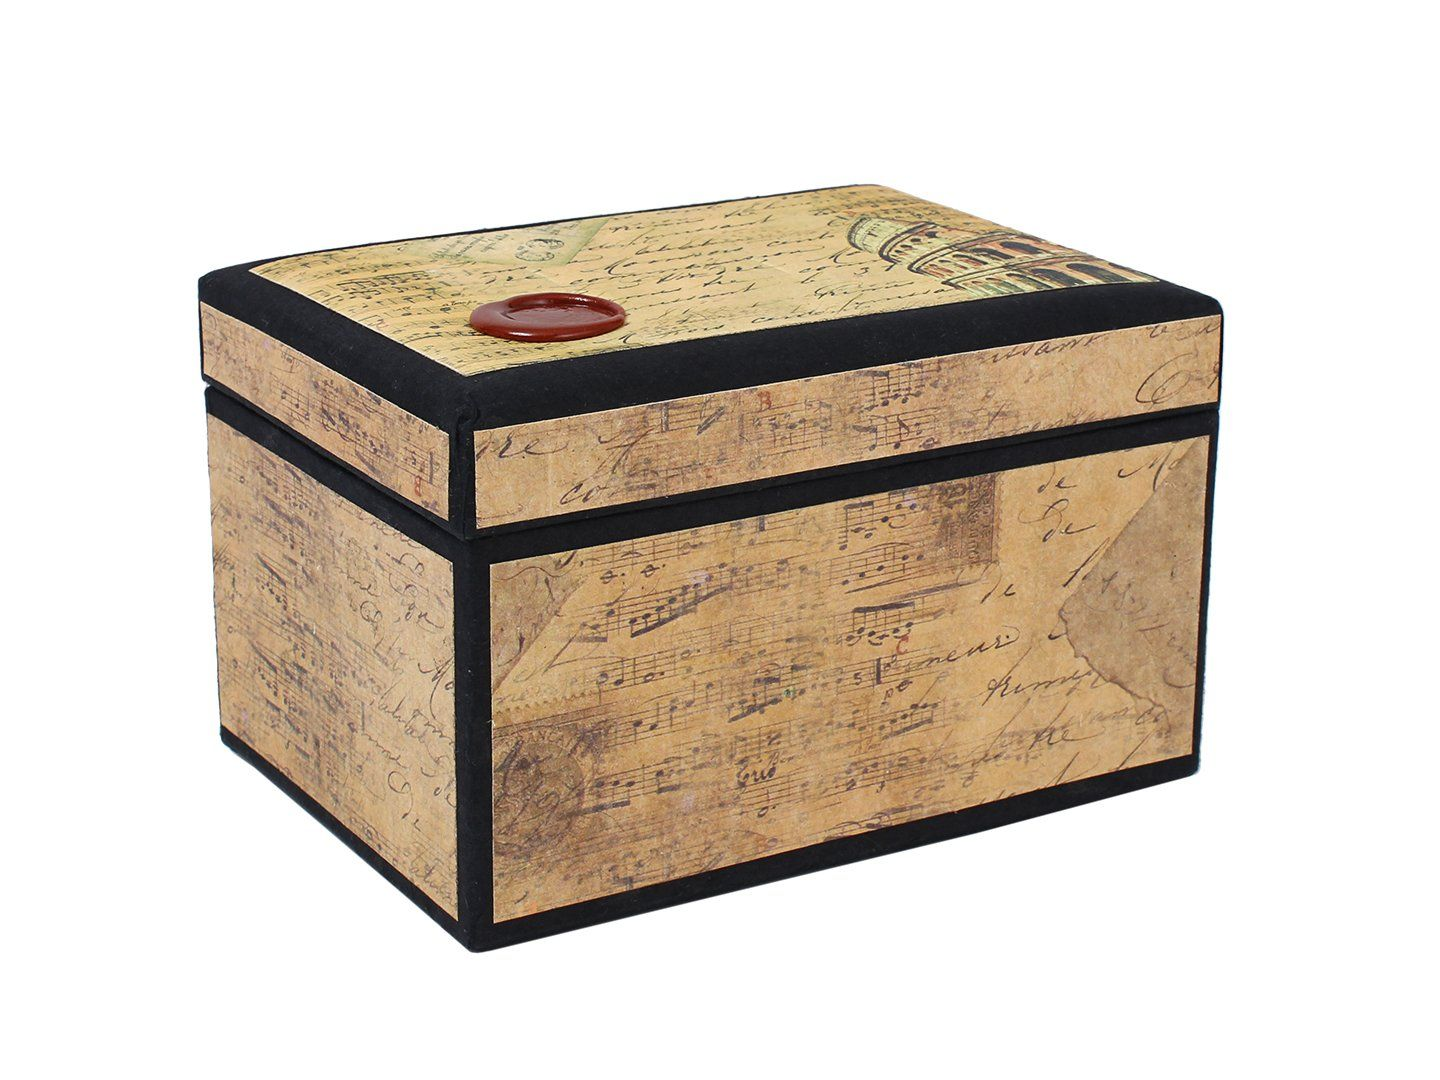 16.50 Prime Amazon.com   Attractive Hand Crafted Designer Keepsake Storage  Box With Illustrations Of